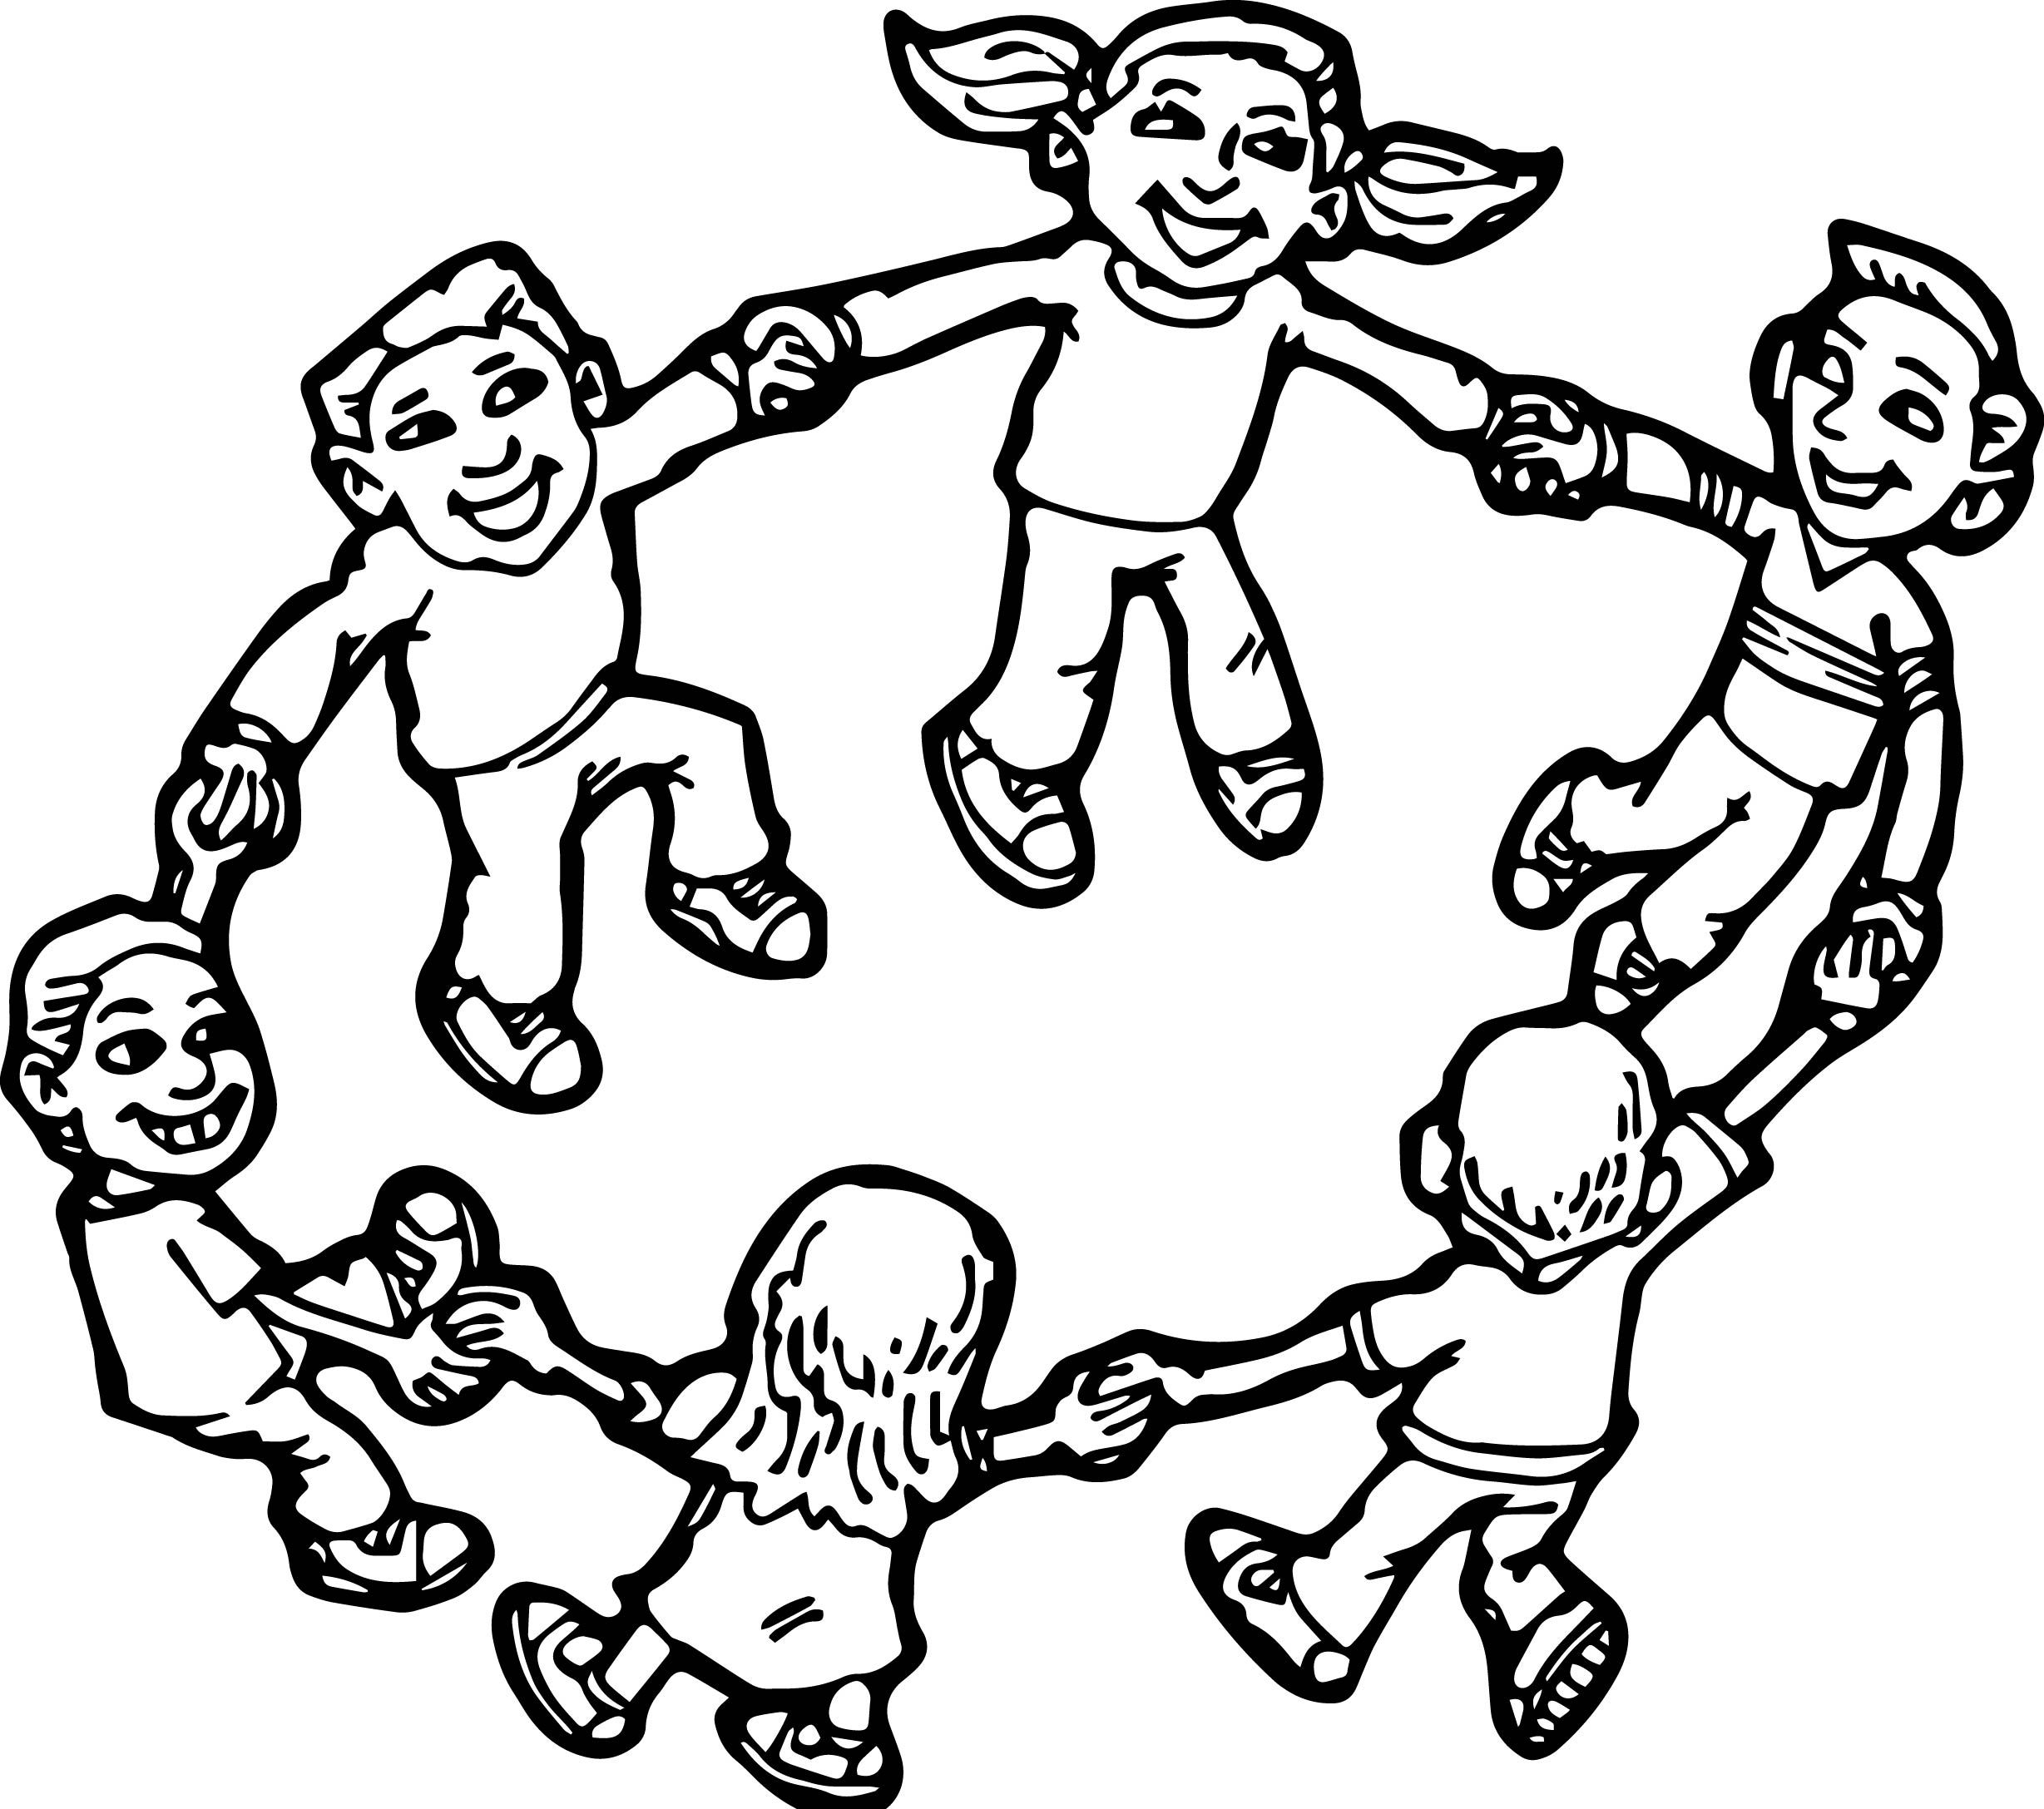 Cool Children Playing Children Coloring Page With Images